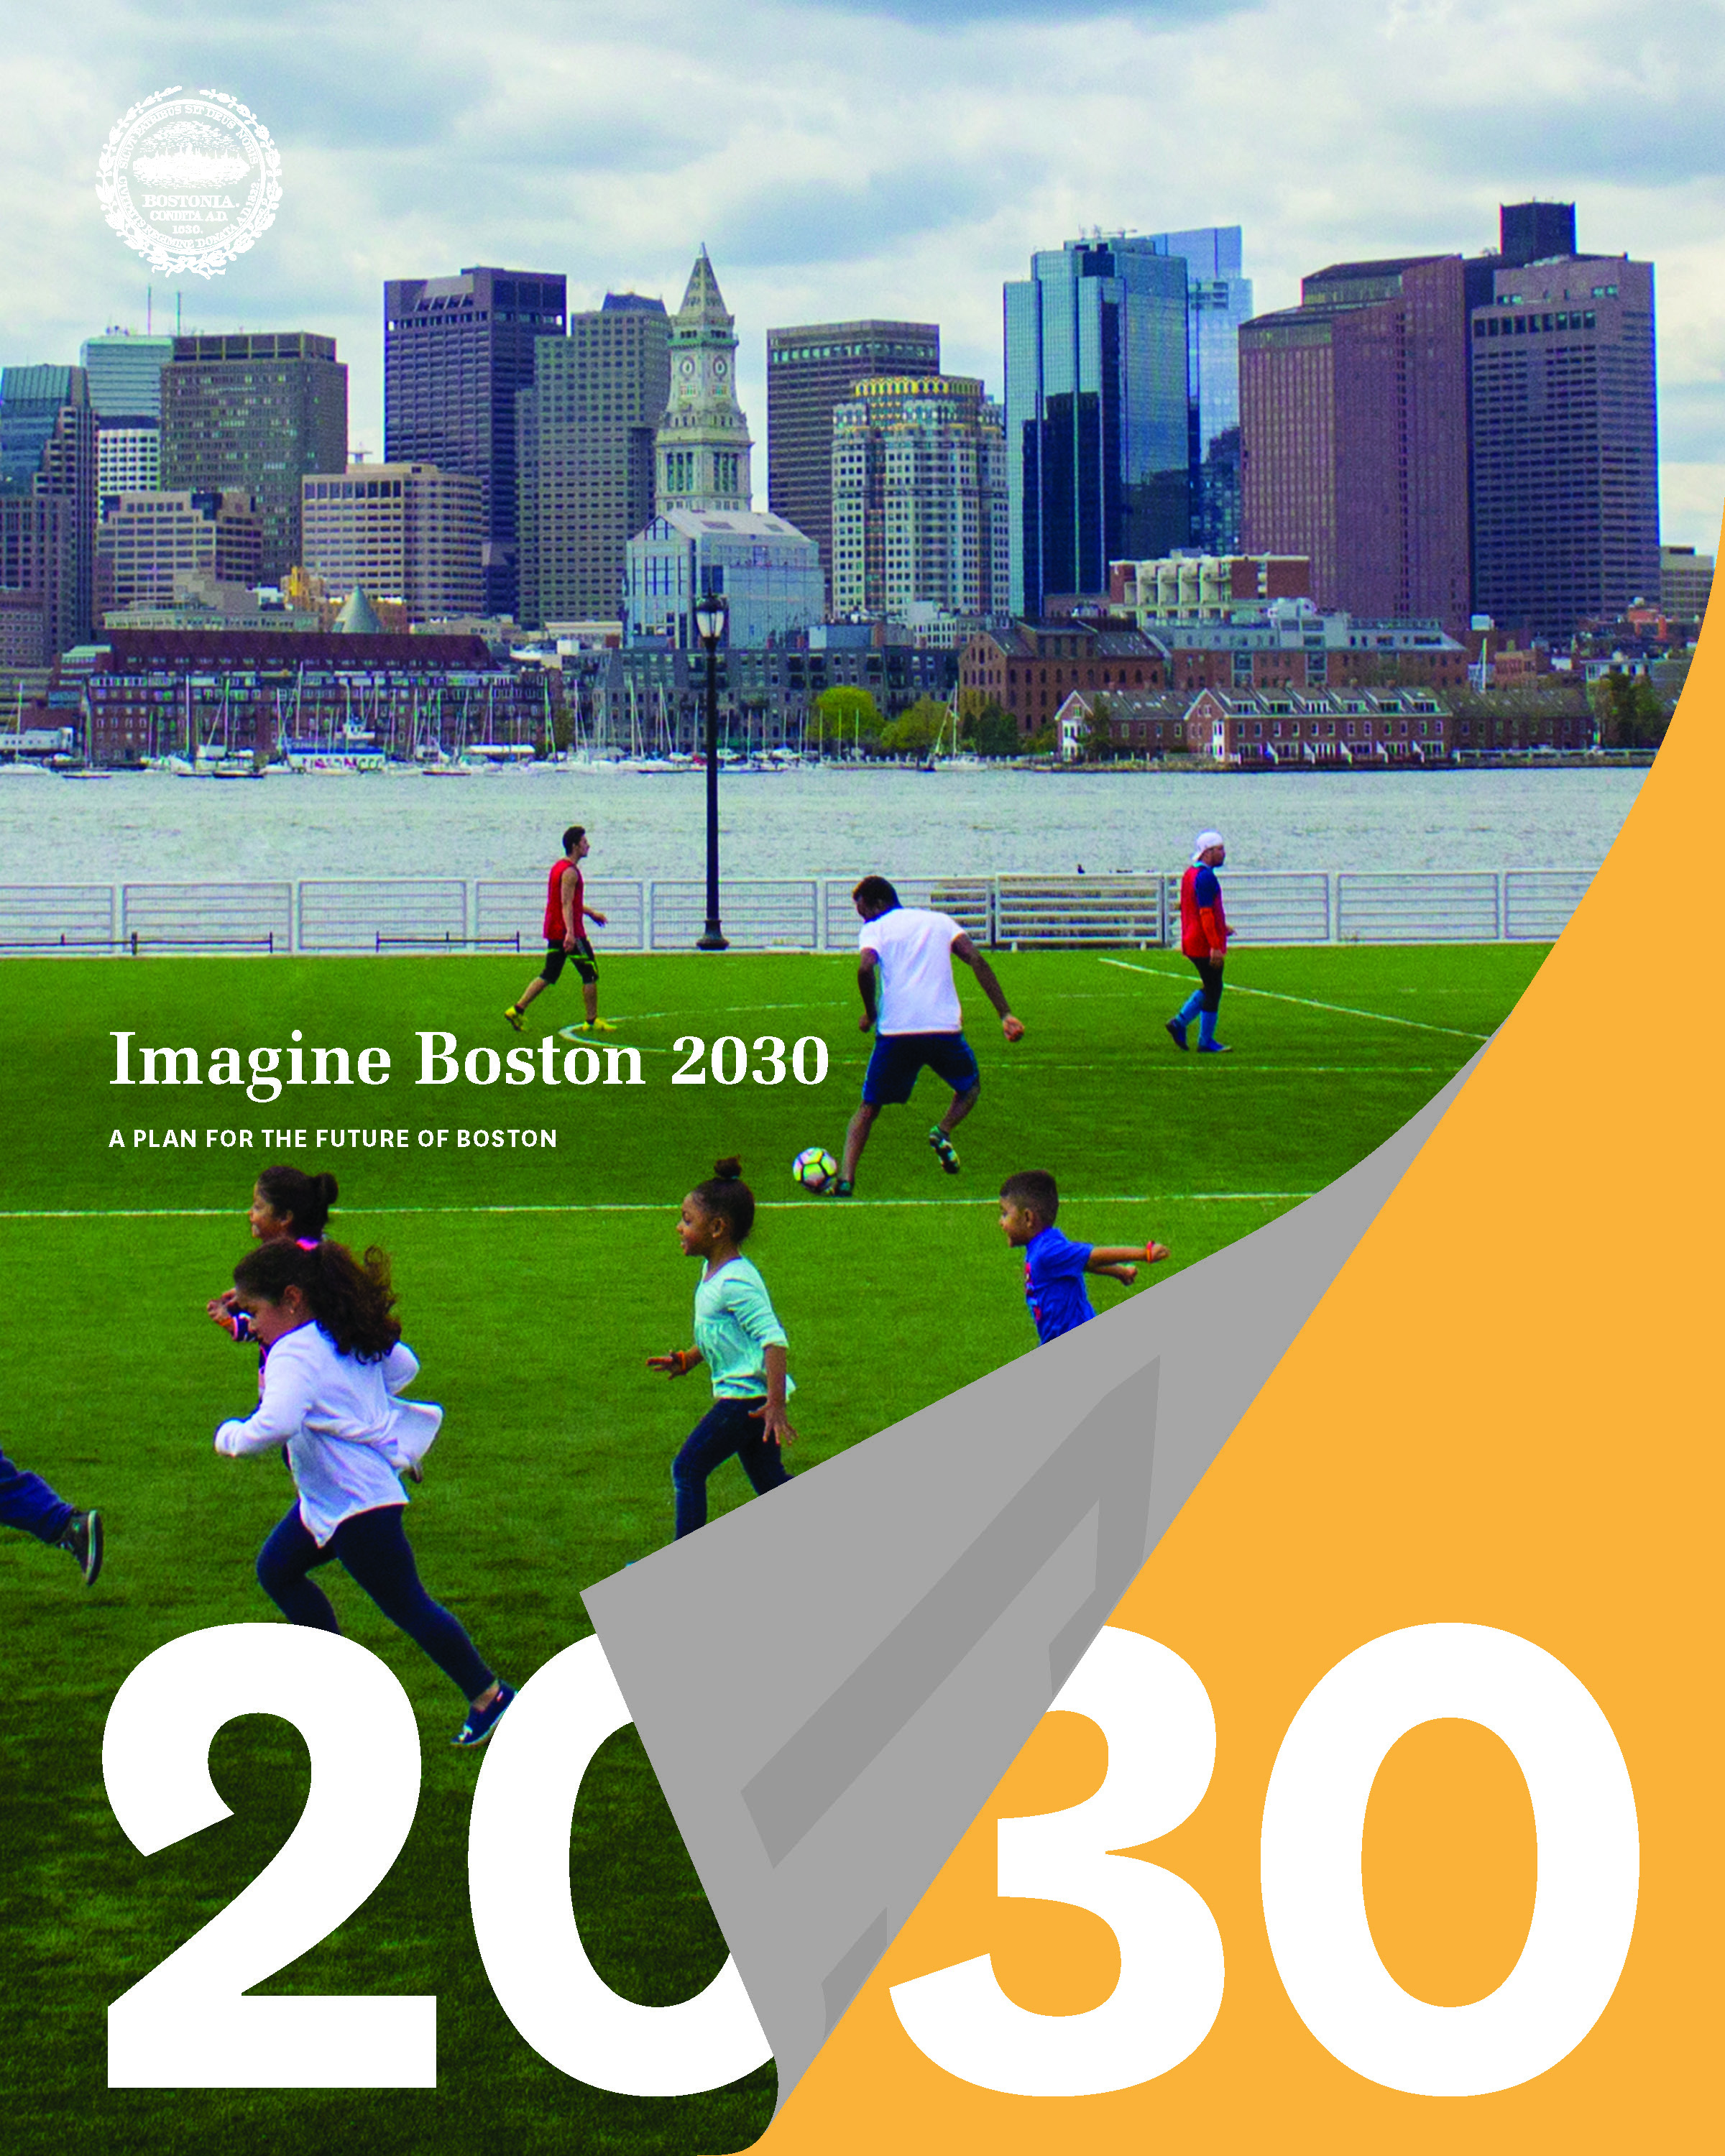 Imagine Boston 2030 launches